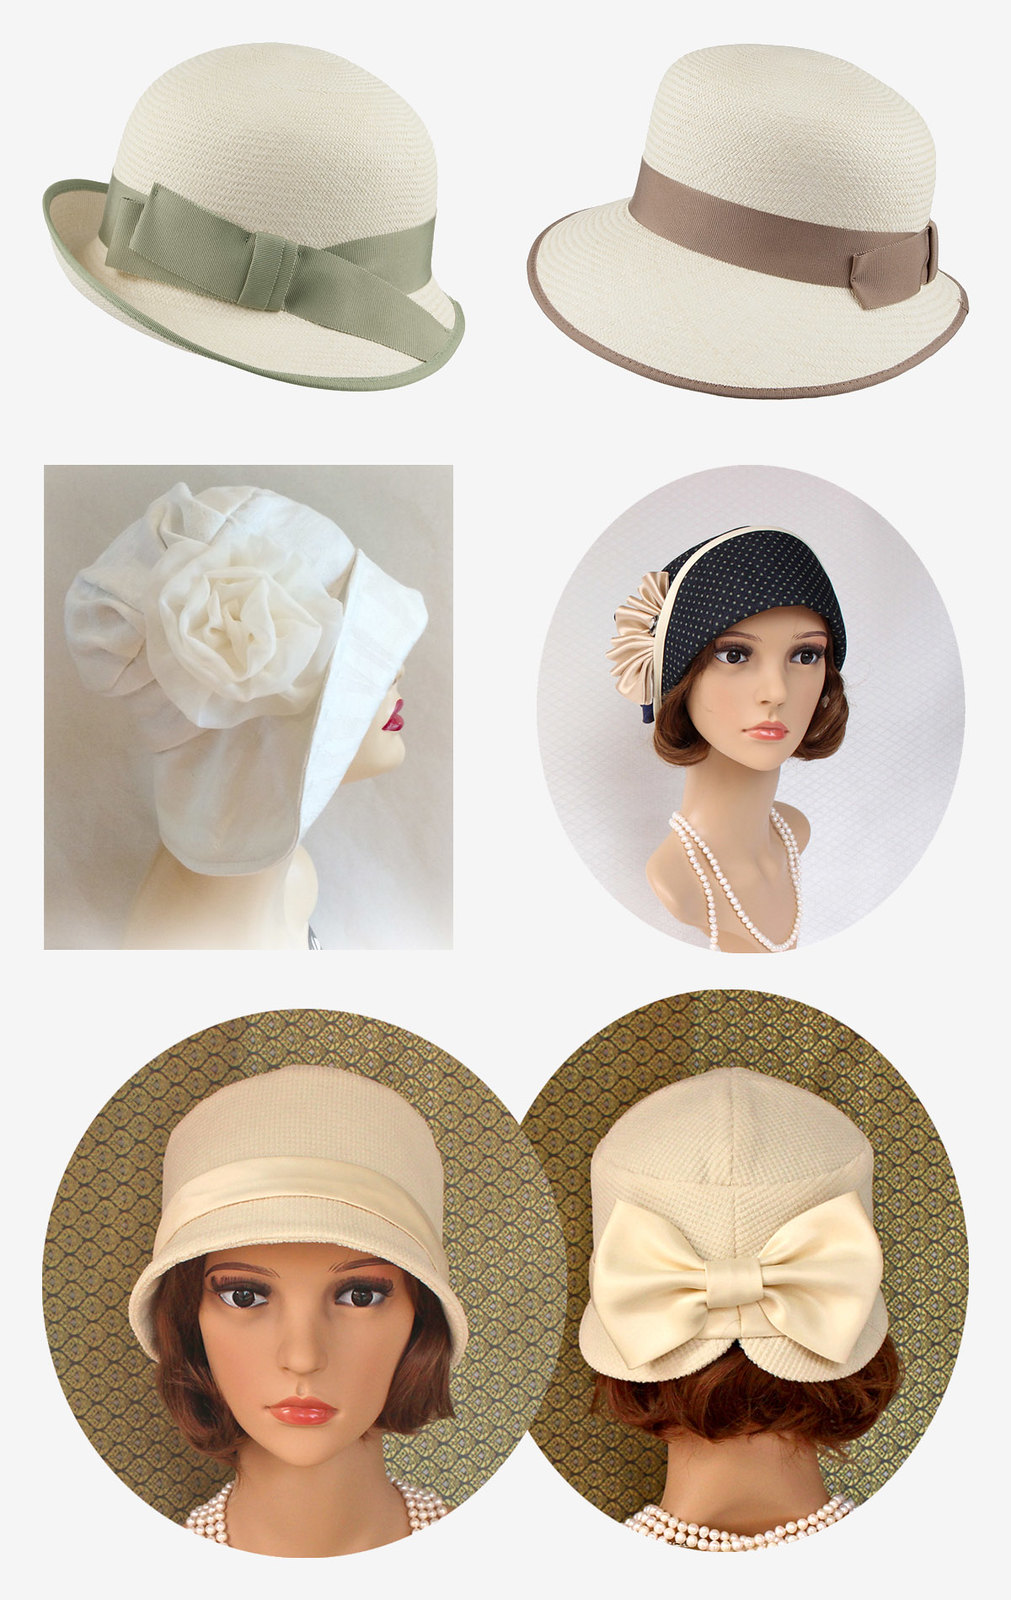 34 Modern Wedding Guest Hats and Fascinators - Cloche hats